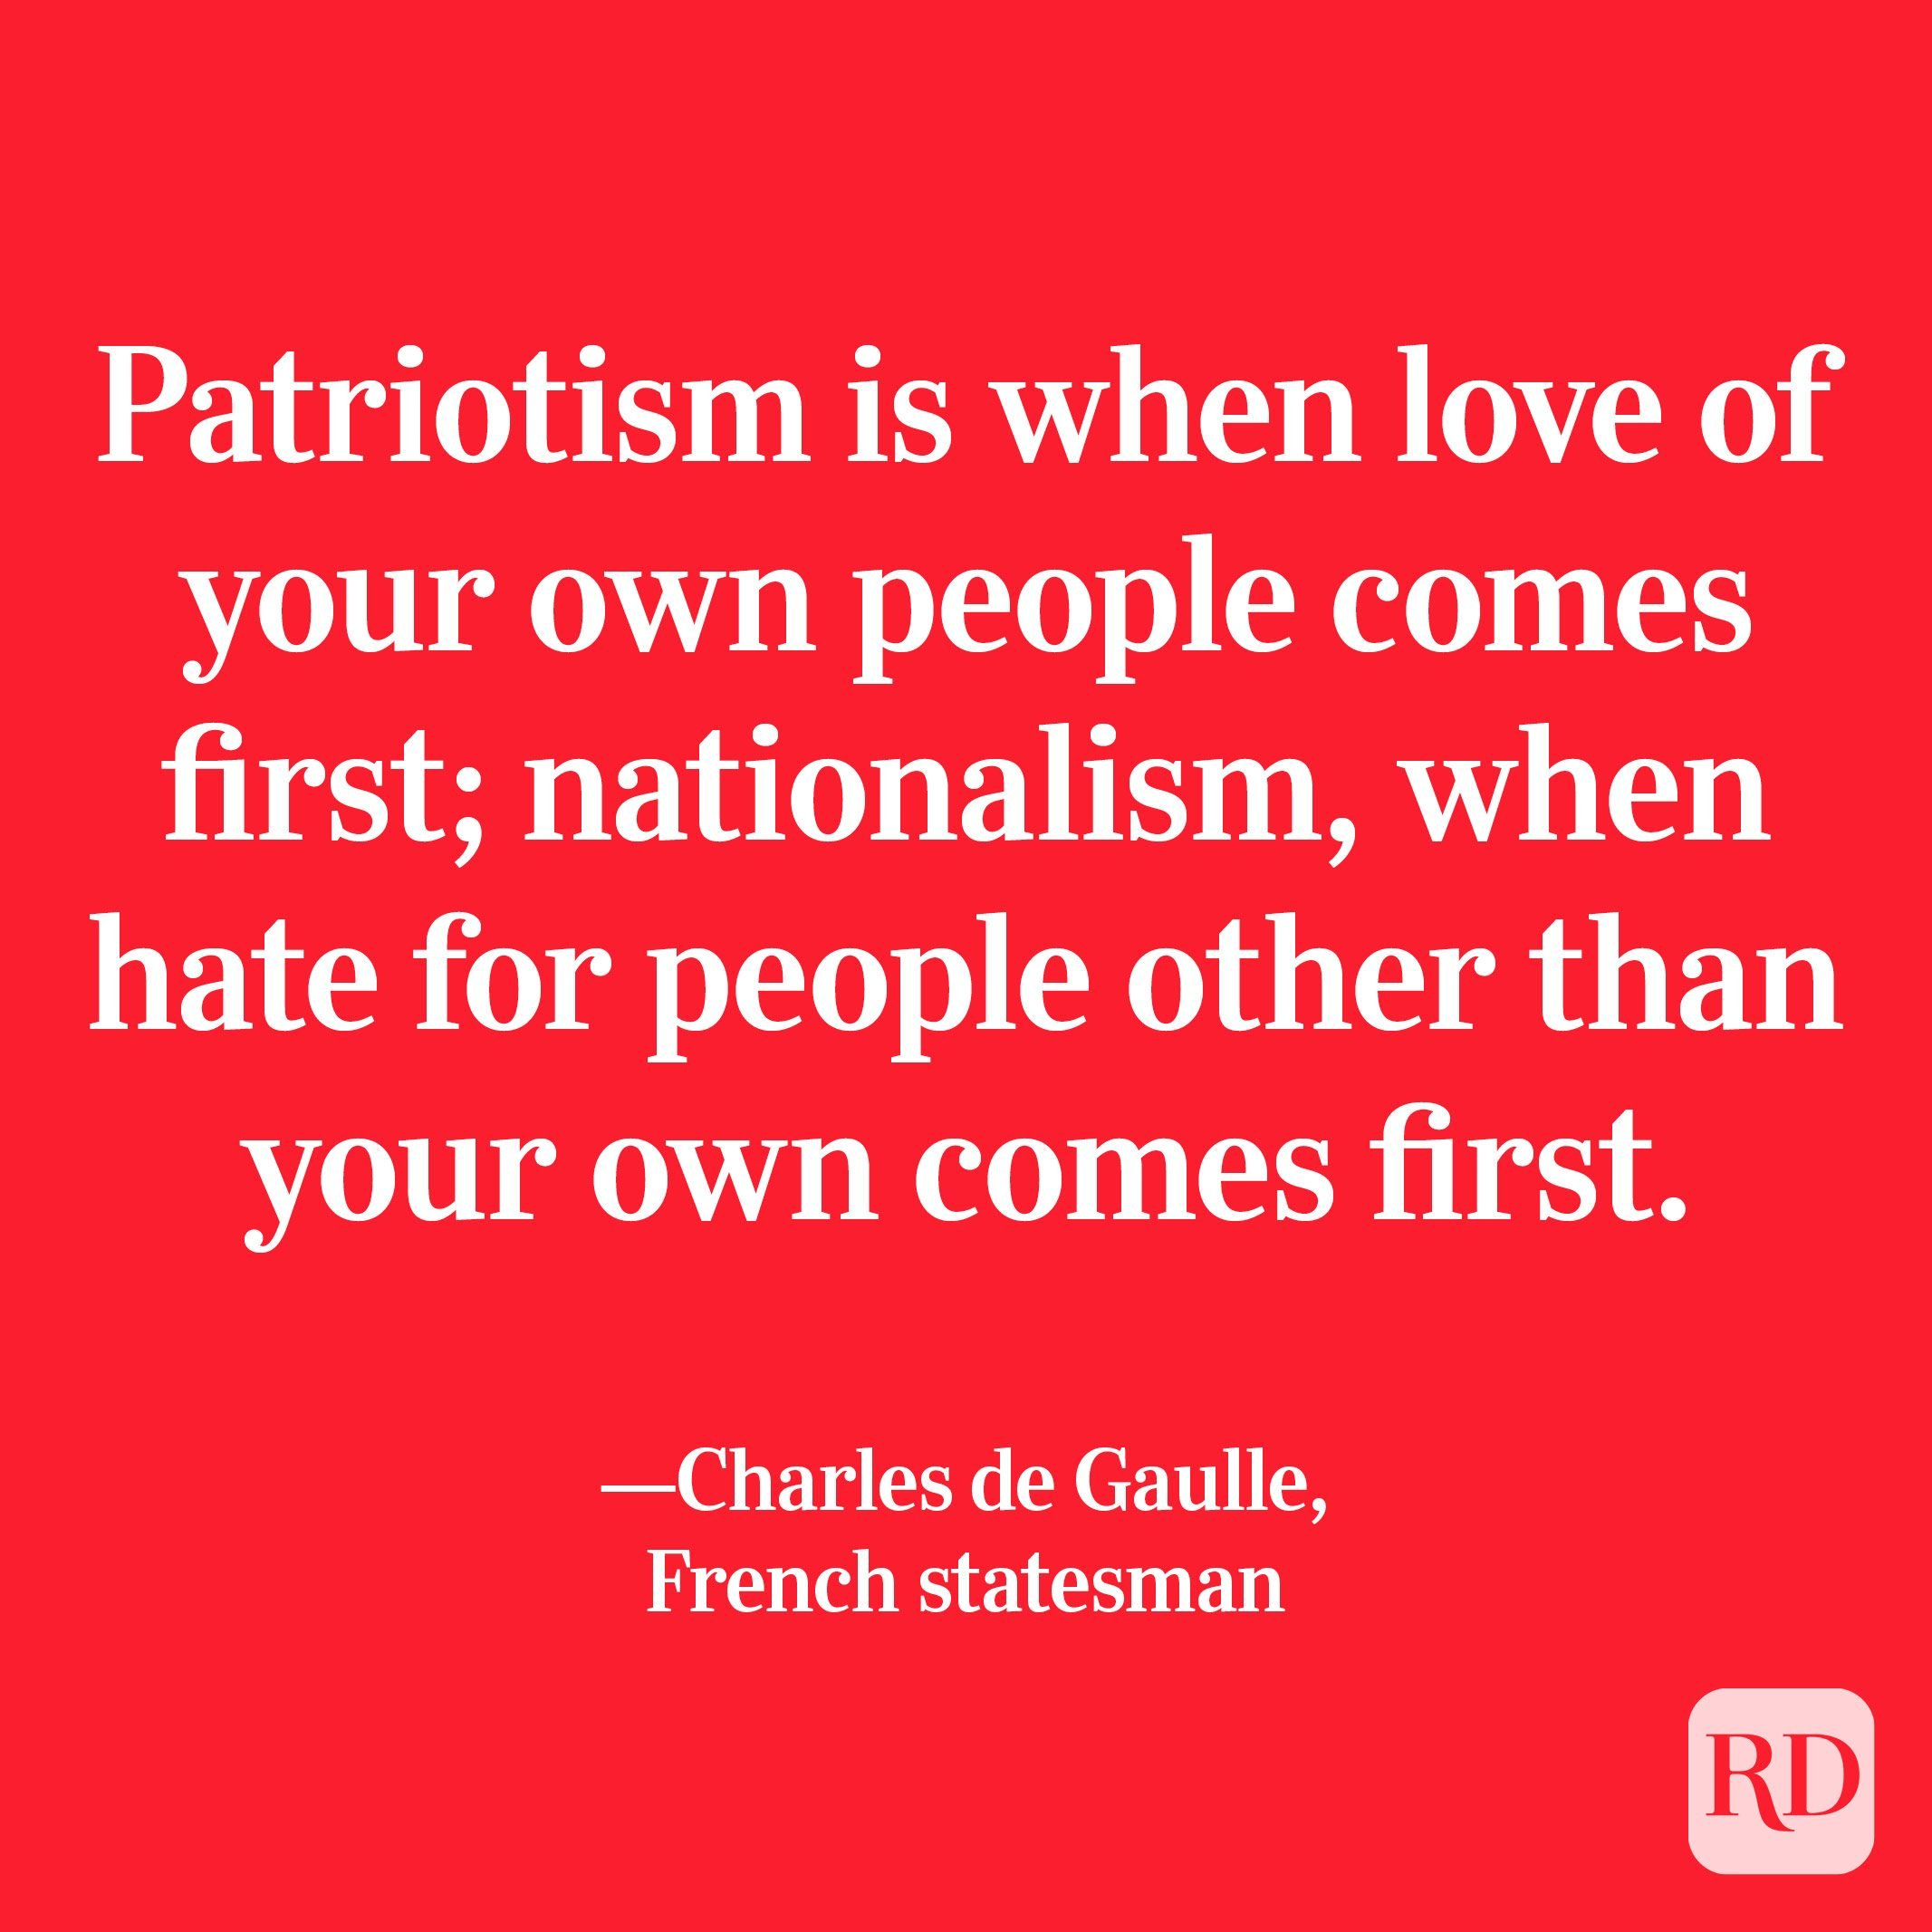 """""""Patriotism is when love of your own people comes first; nationalism, when hate for people other than your own comes first."""" —Charles de Gaulle, French statesman"""